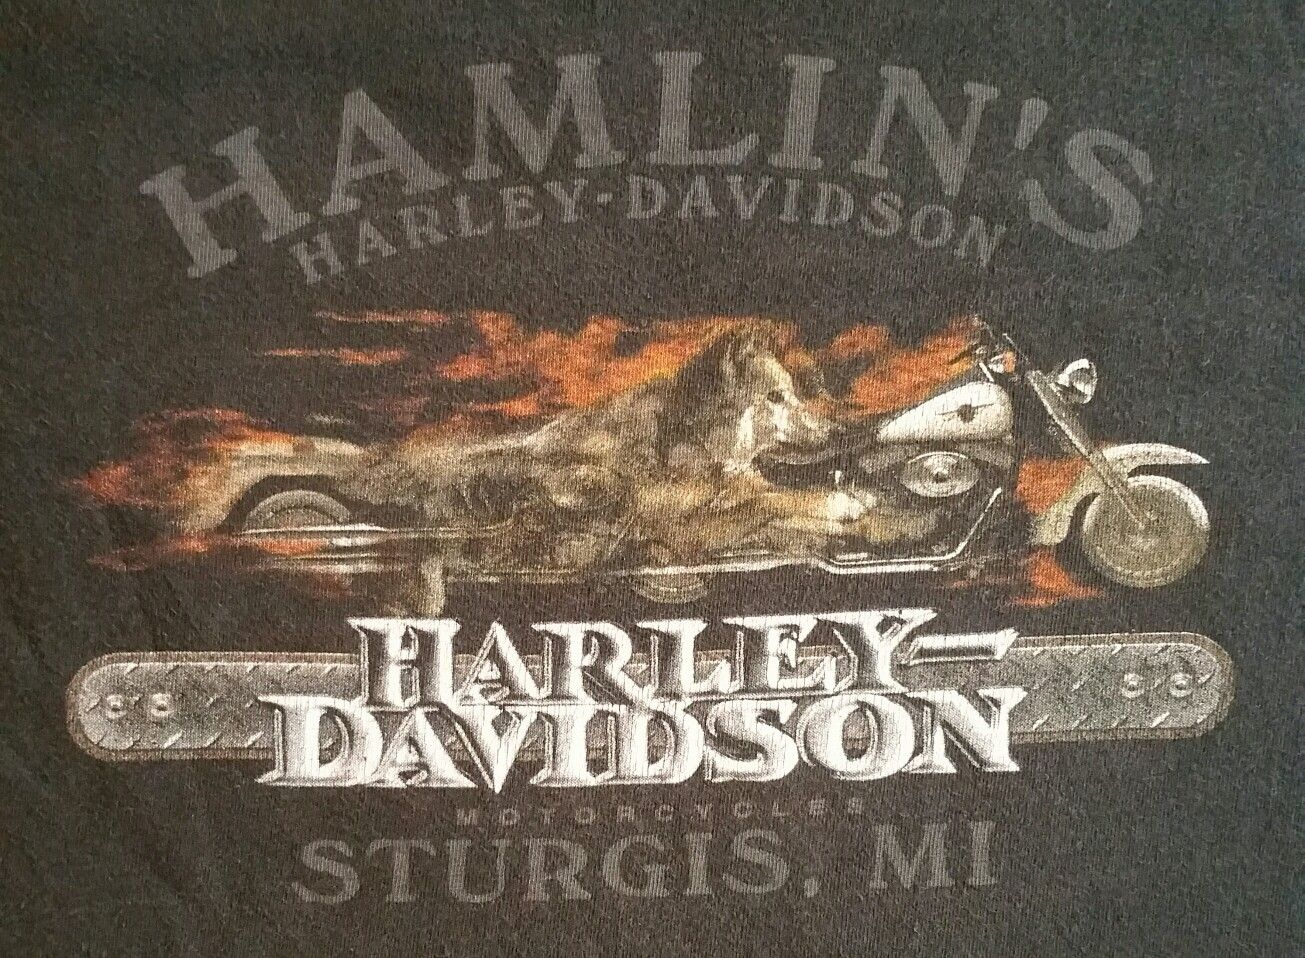 Pin By Robert Davis On T Shirts From Hd Dealers I Have Ridden To Harley Davidson Pictures Harley Davidson Harley D